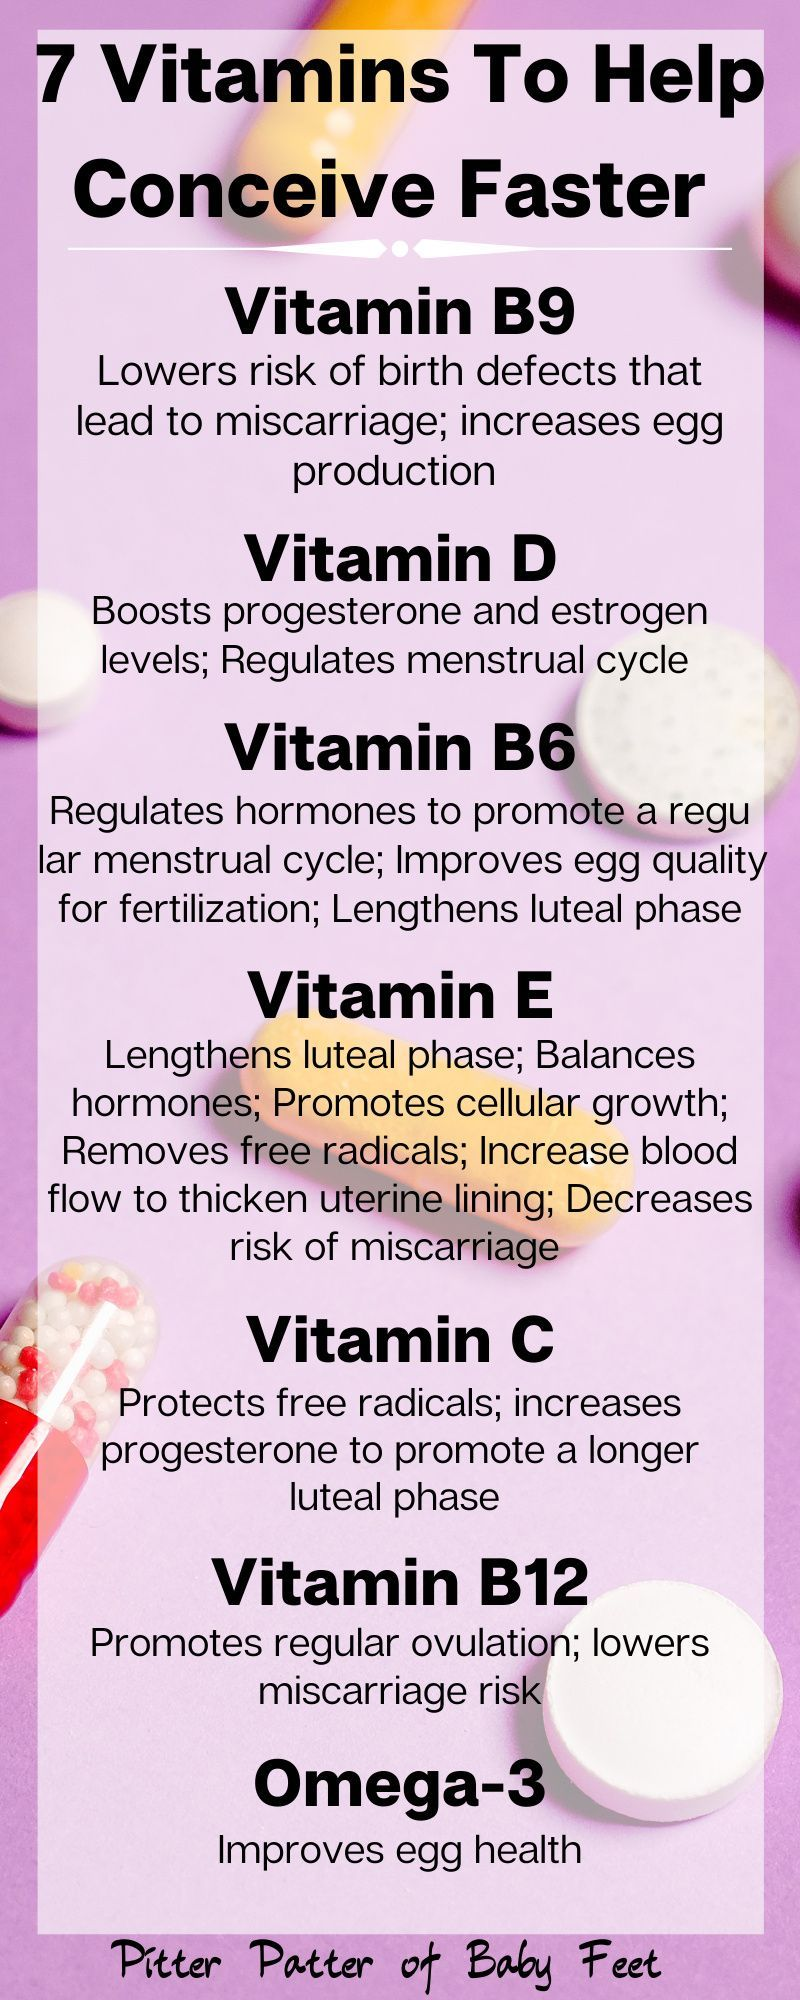 b5bf81bb15d720ea498480e6d10fe1df - How Likely Is It To Get Pregnant With Pre Ejaculation